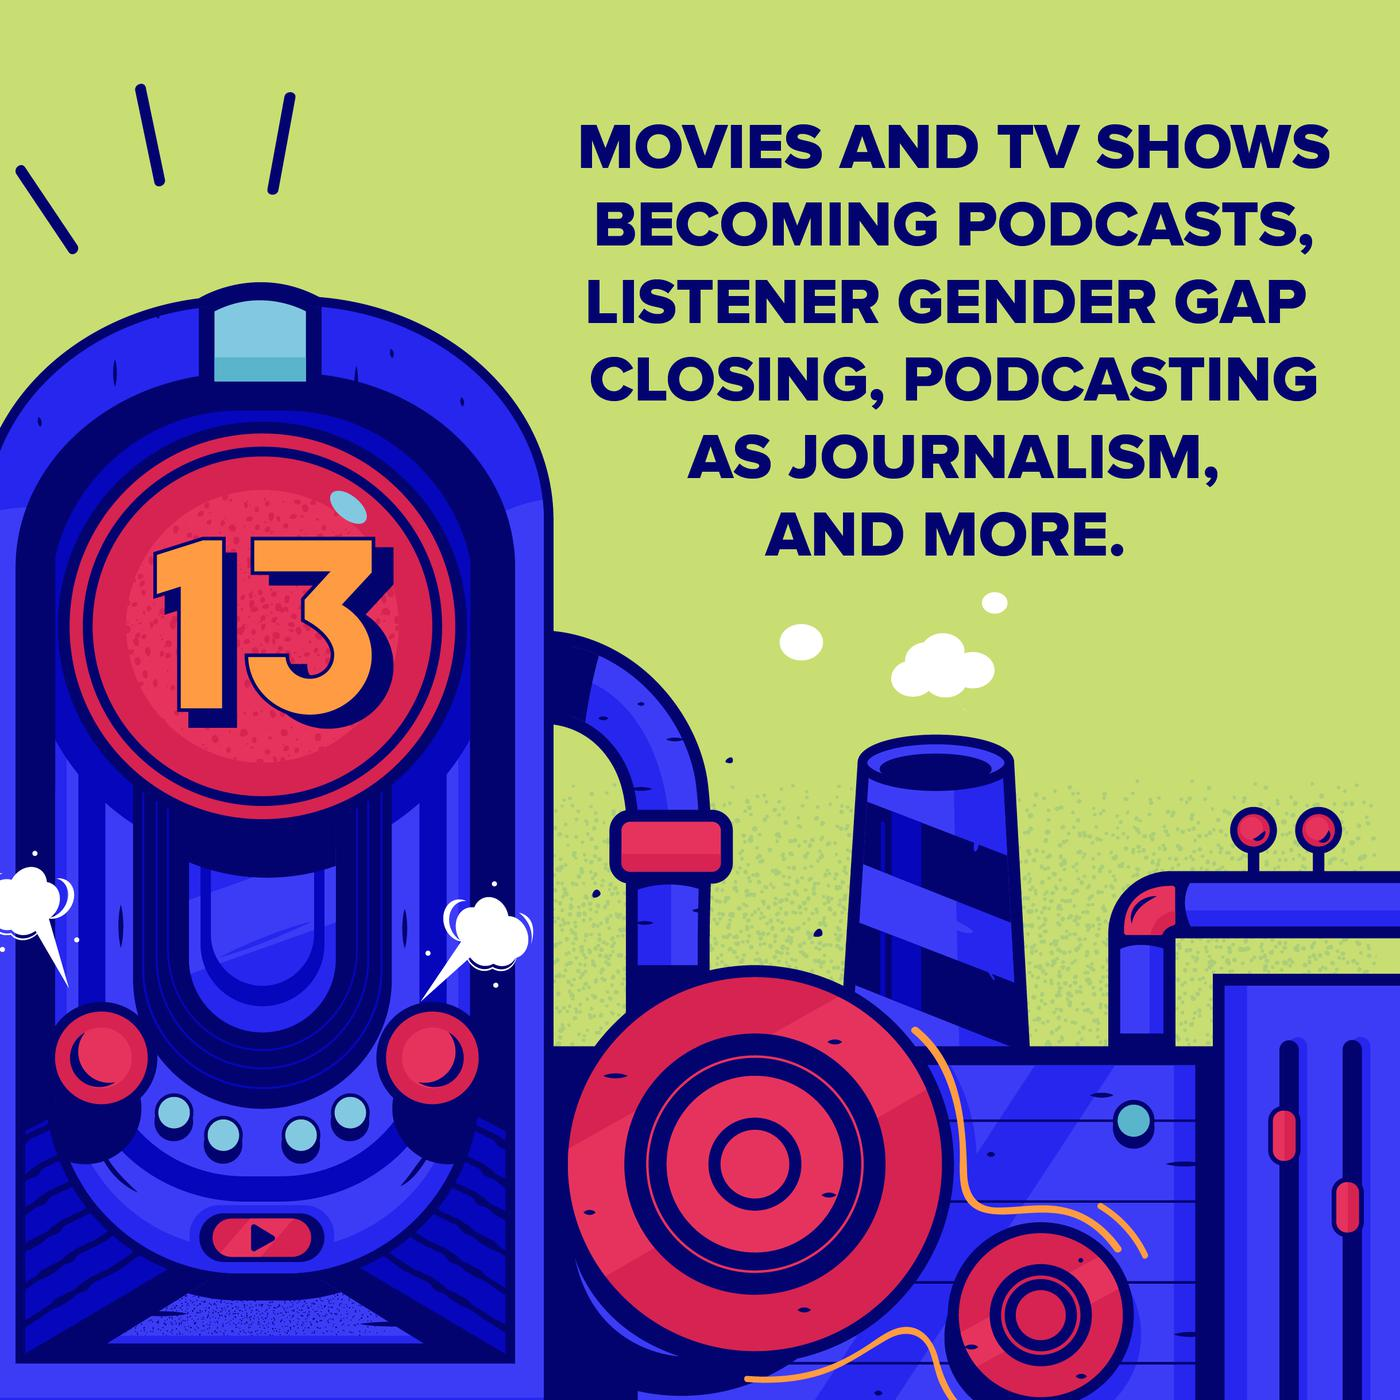 Episode 13 (TWIP) - Movies and TV Shows Becoming Podcasts, Listener Gender Gap Closing, Podcasting as Journalism, and More.